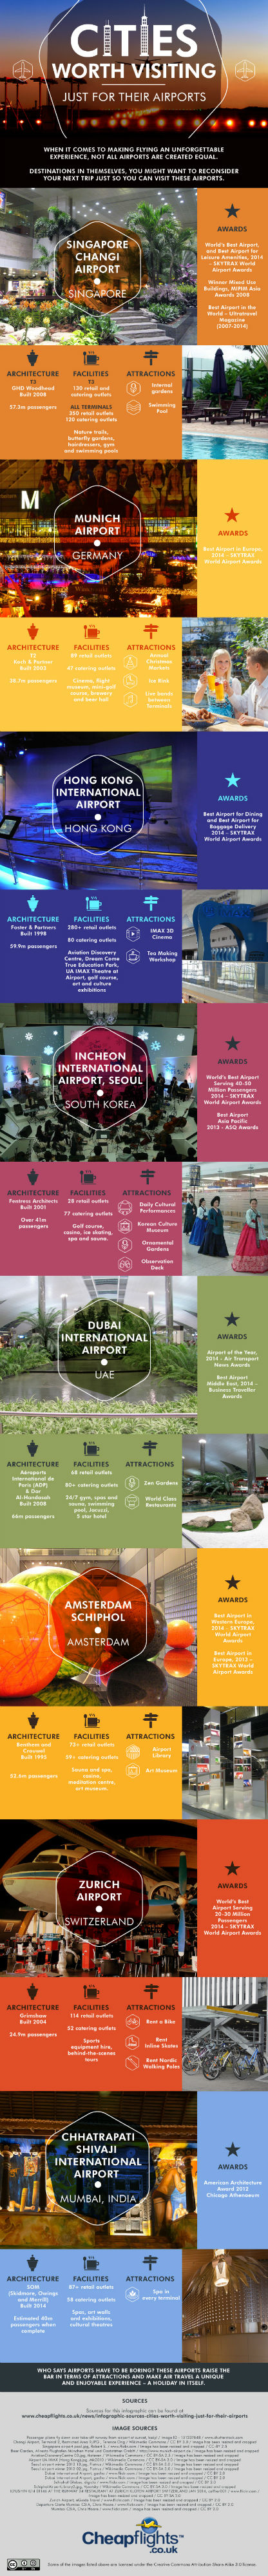 Cities Worth Visiting For Their Airports [Infographic]